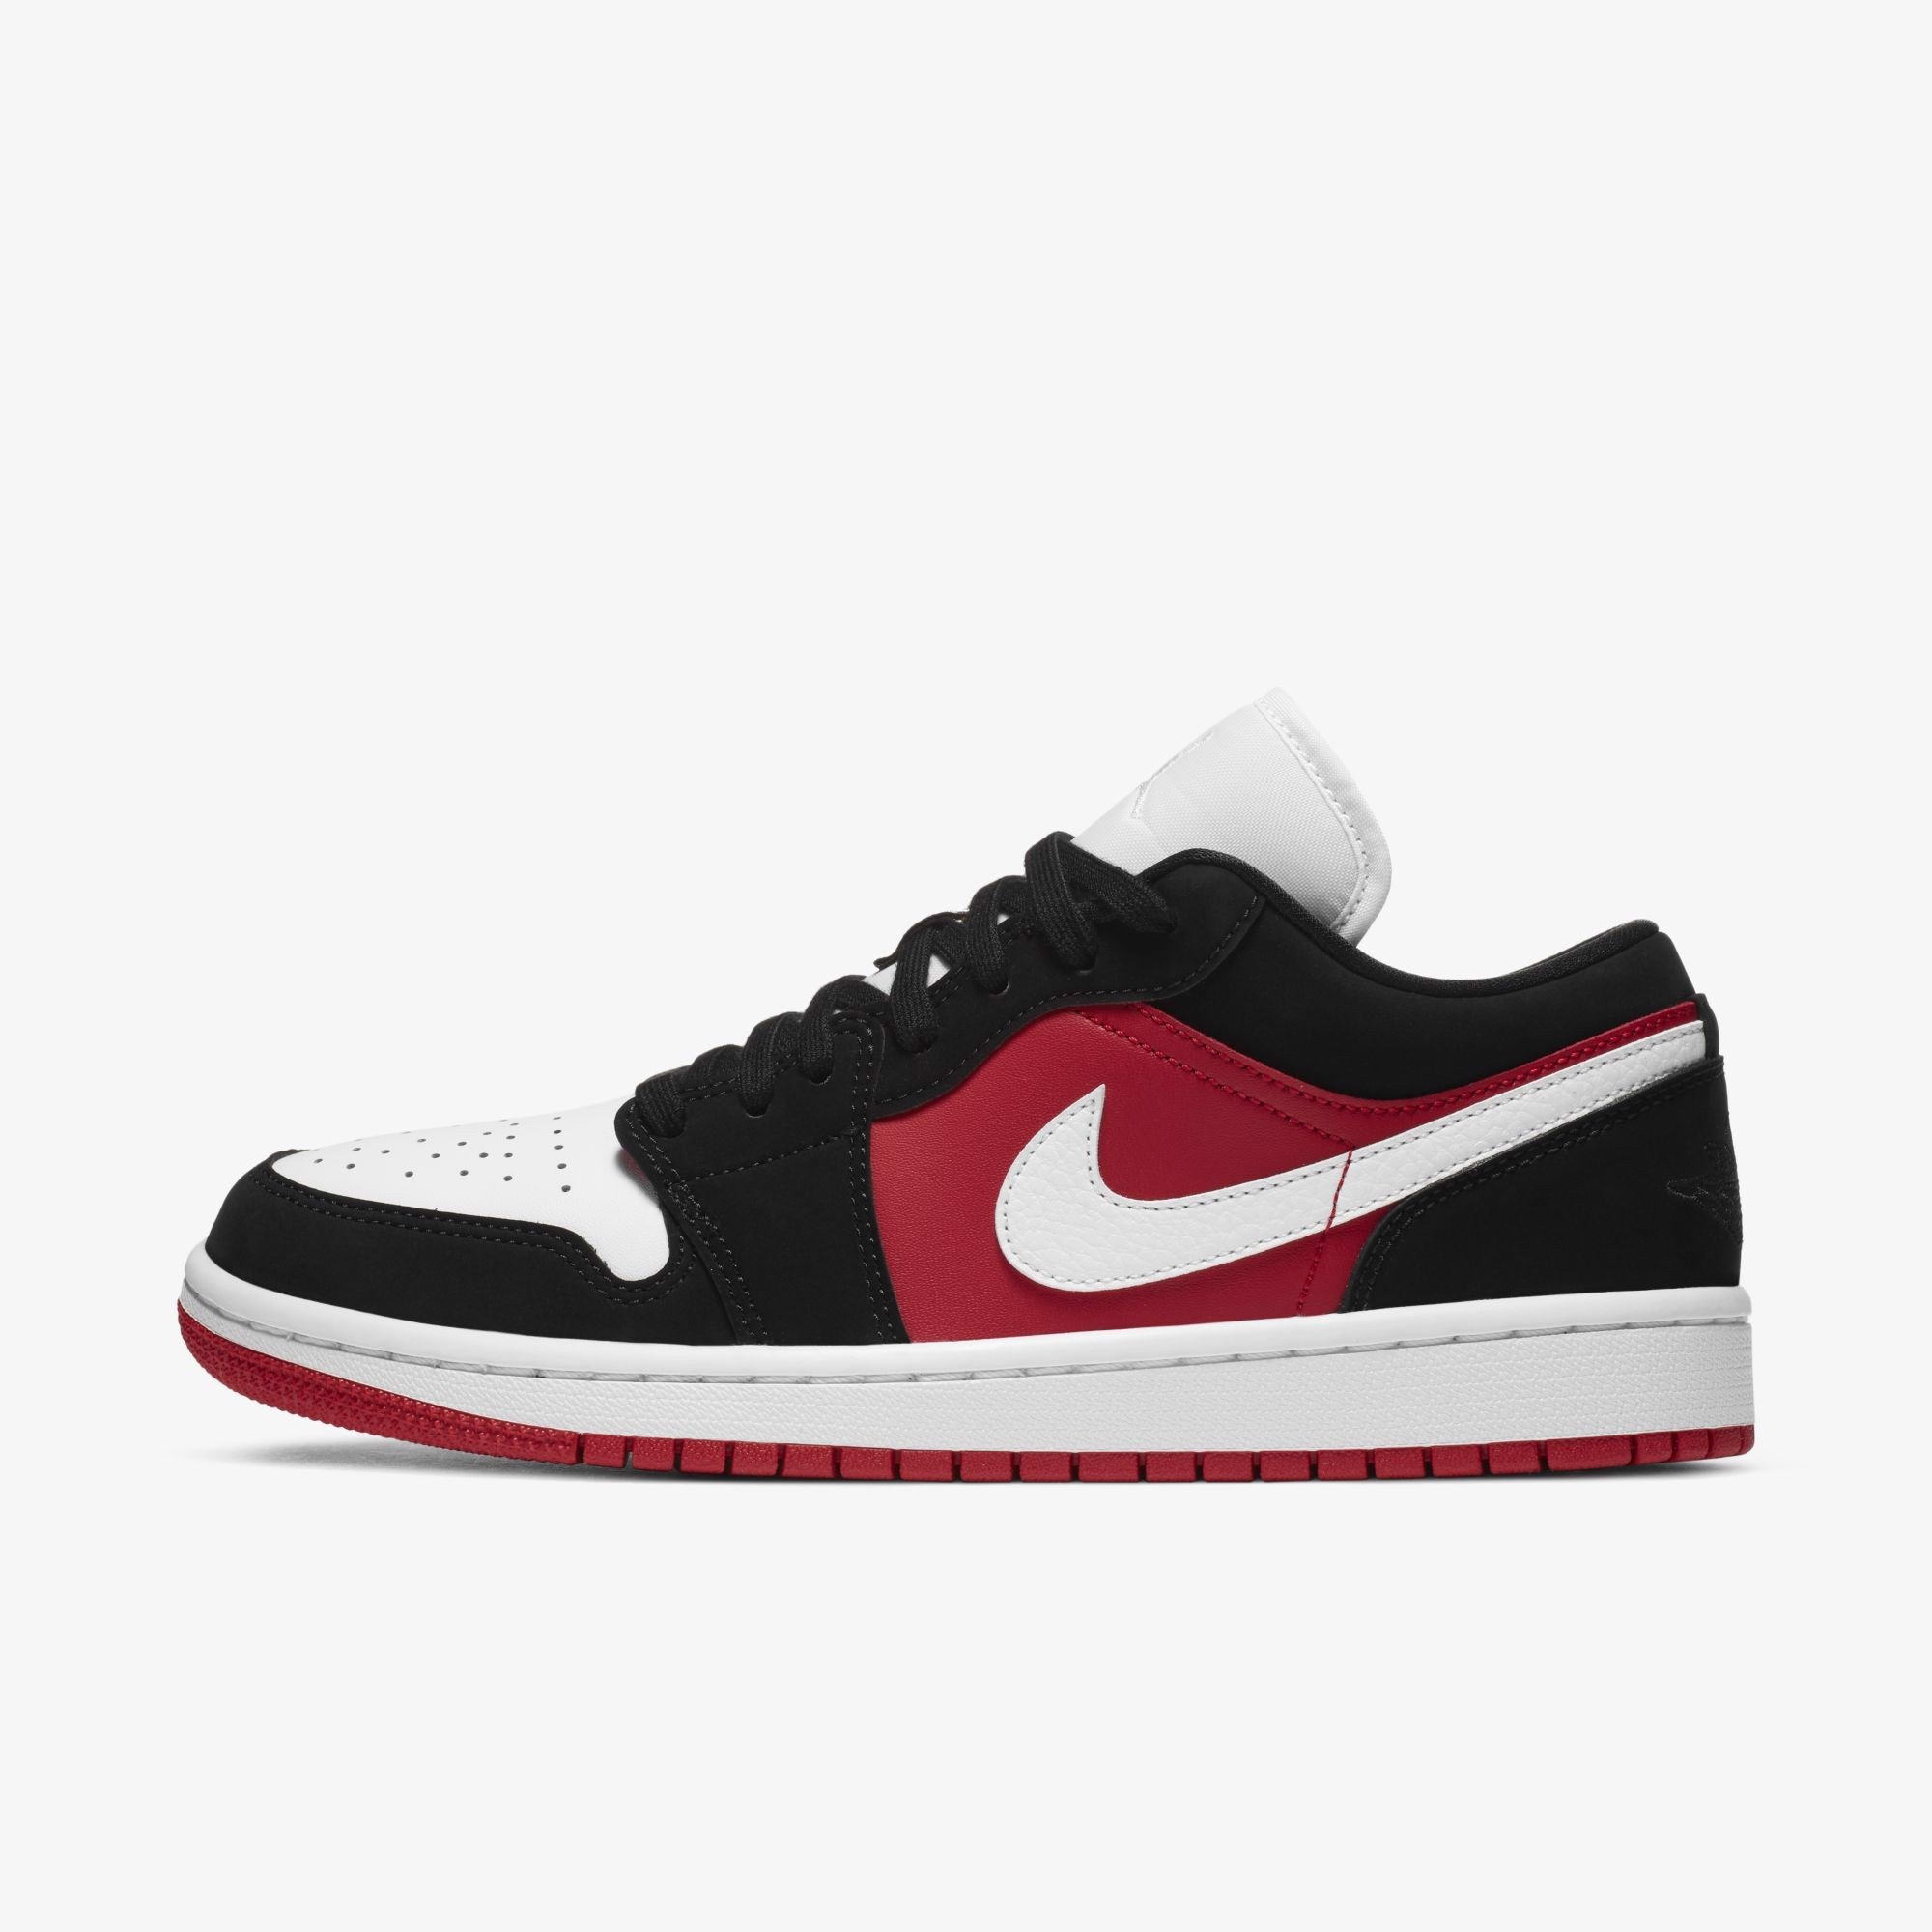 Air Jordan 1 Low - Gym Red/Black/White